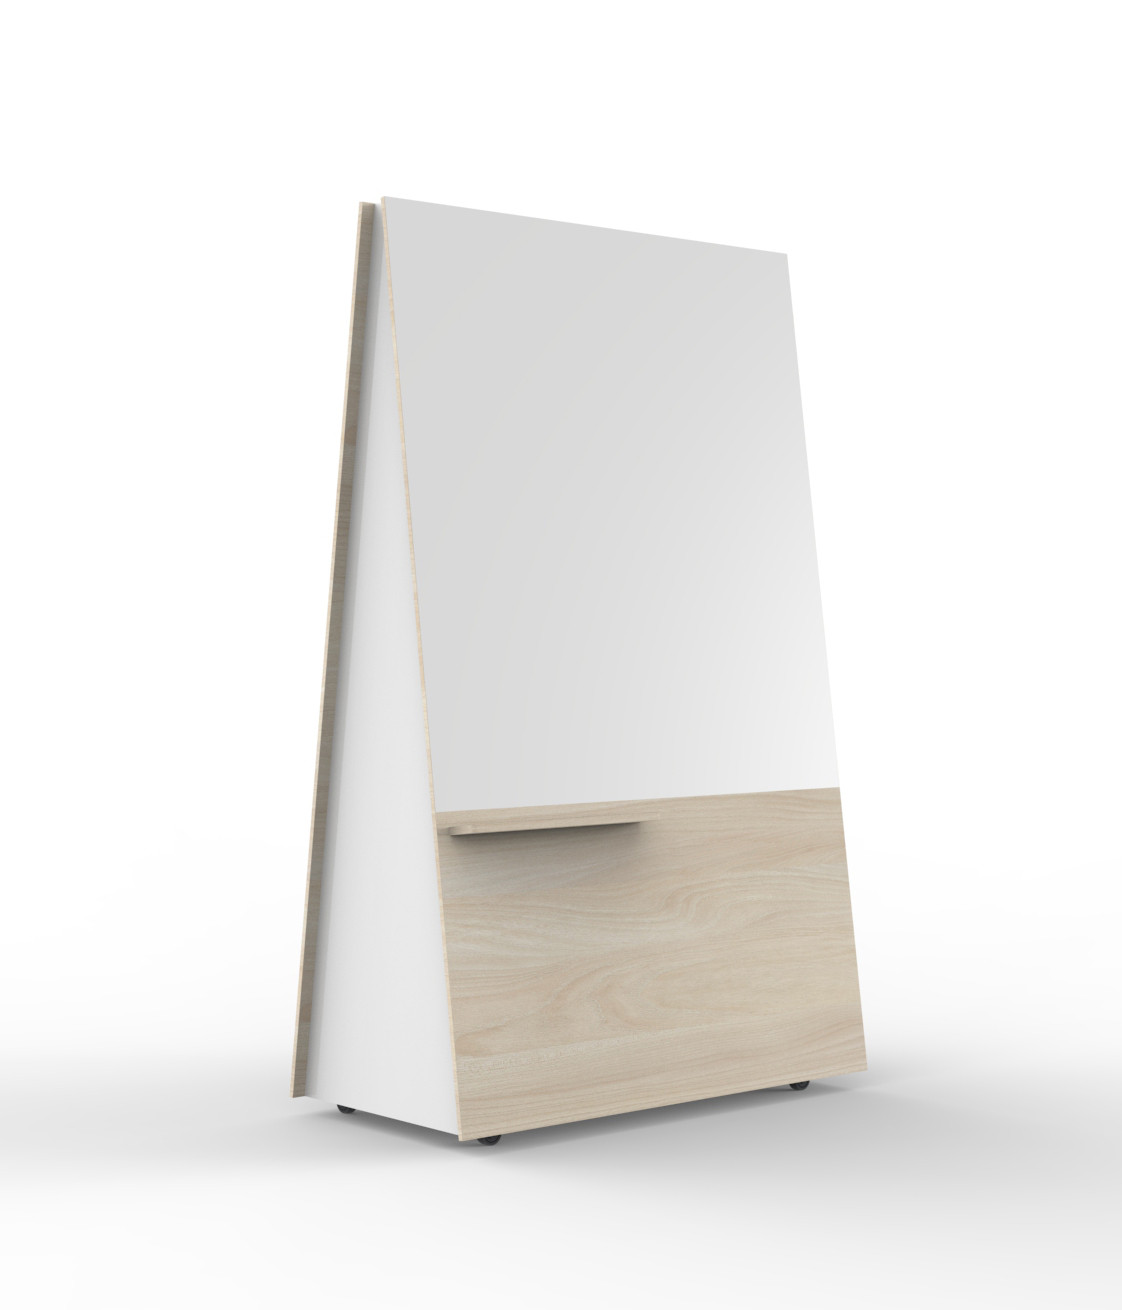 Wedge White Boards